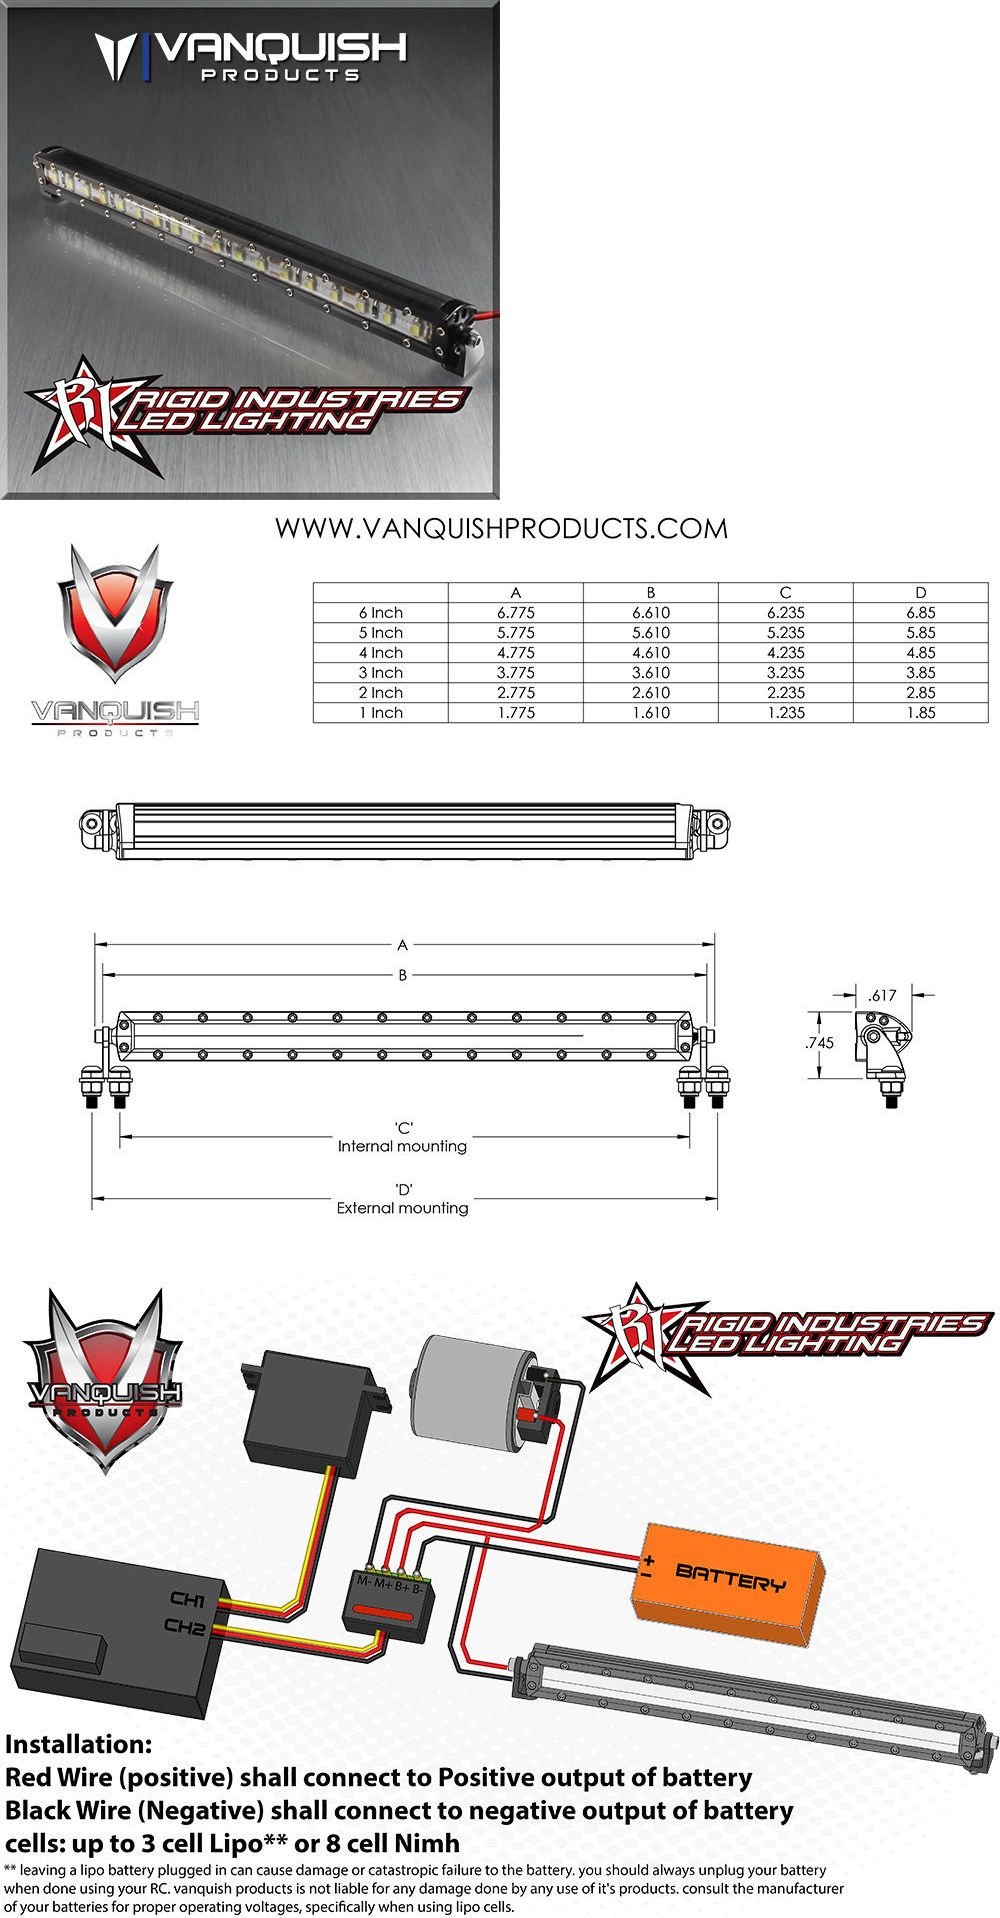 small resolution of lighting and lamps 182177 vanquish rigid industries 6in led light bar black 1 10 scale axial hpi vps06751 buy it now only 58 99 on ebay lighting